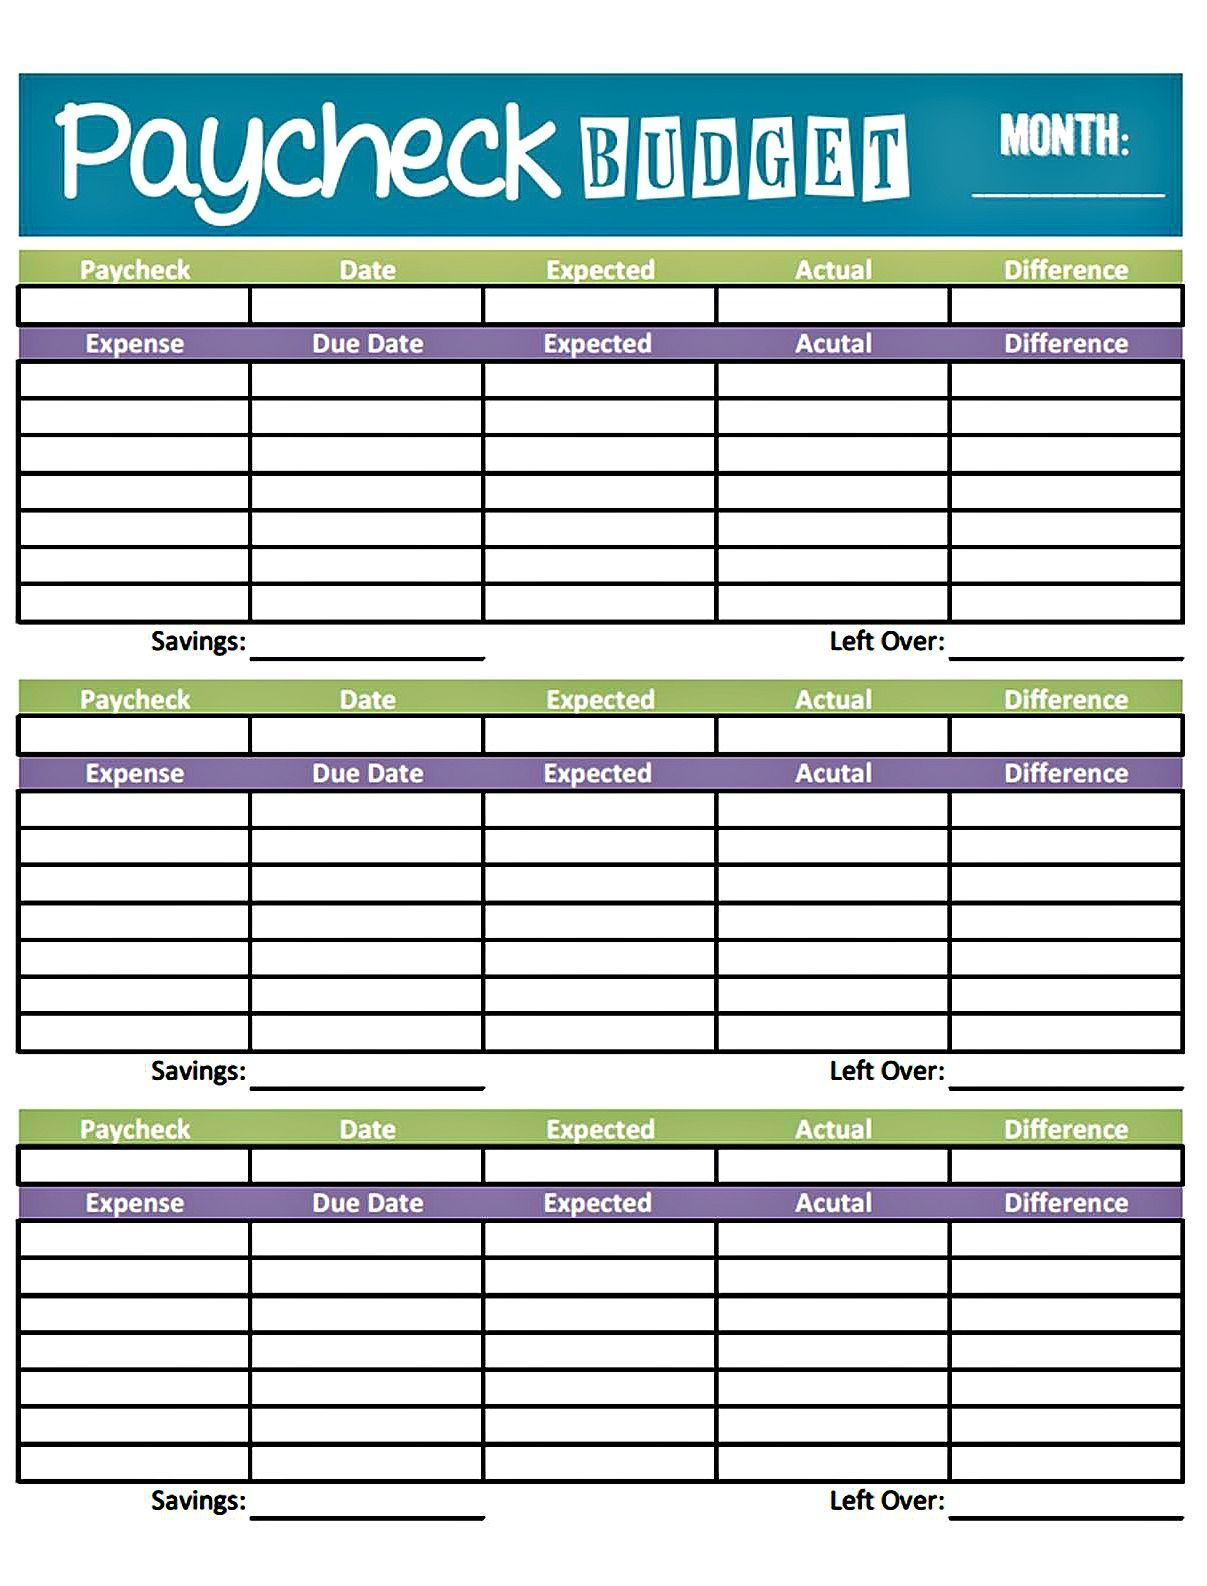 Pay Check Budget Worksheet Template